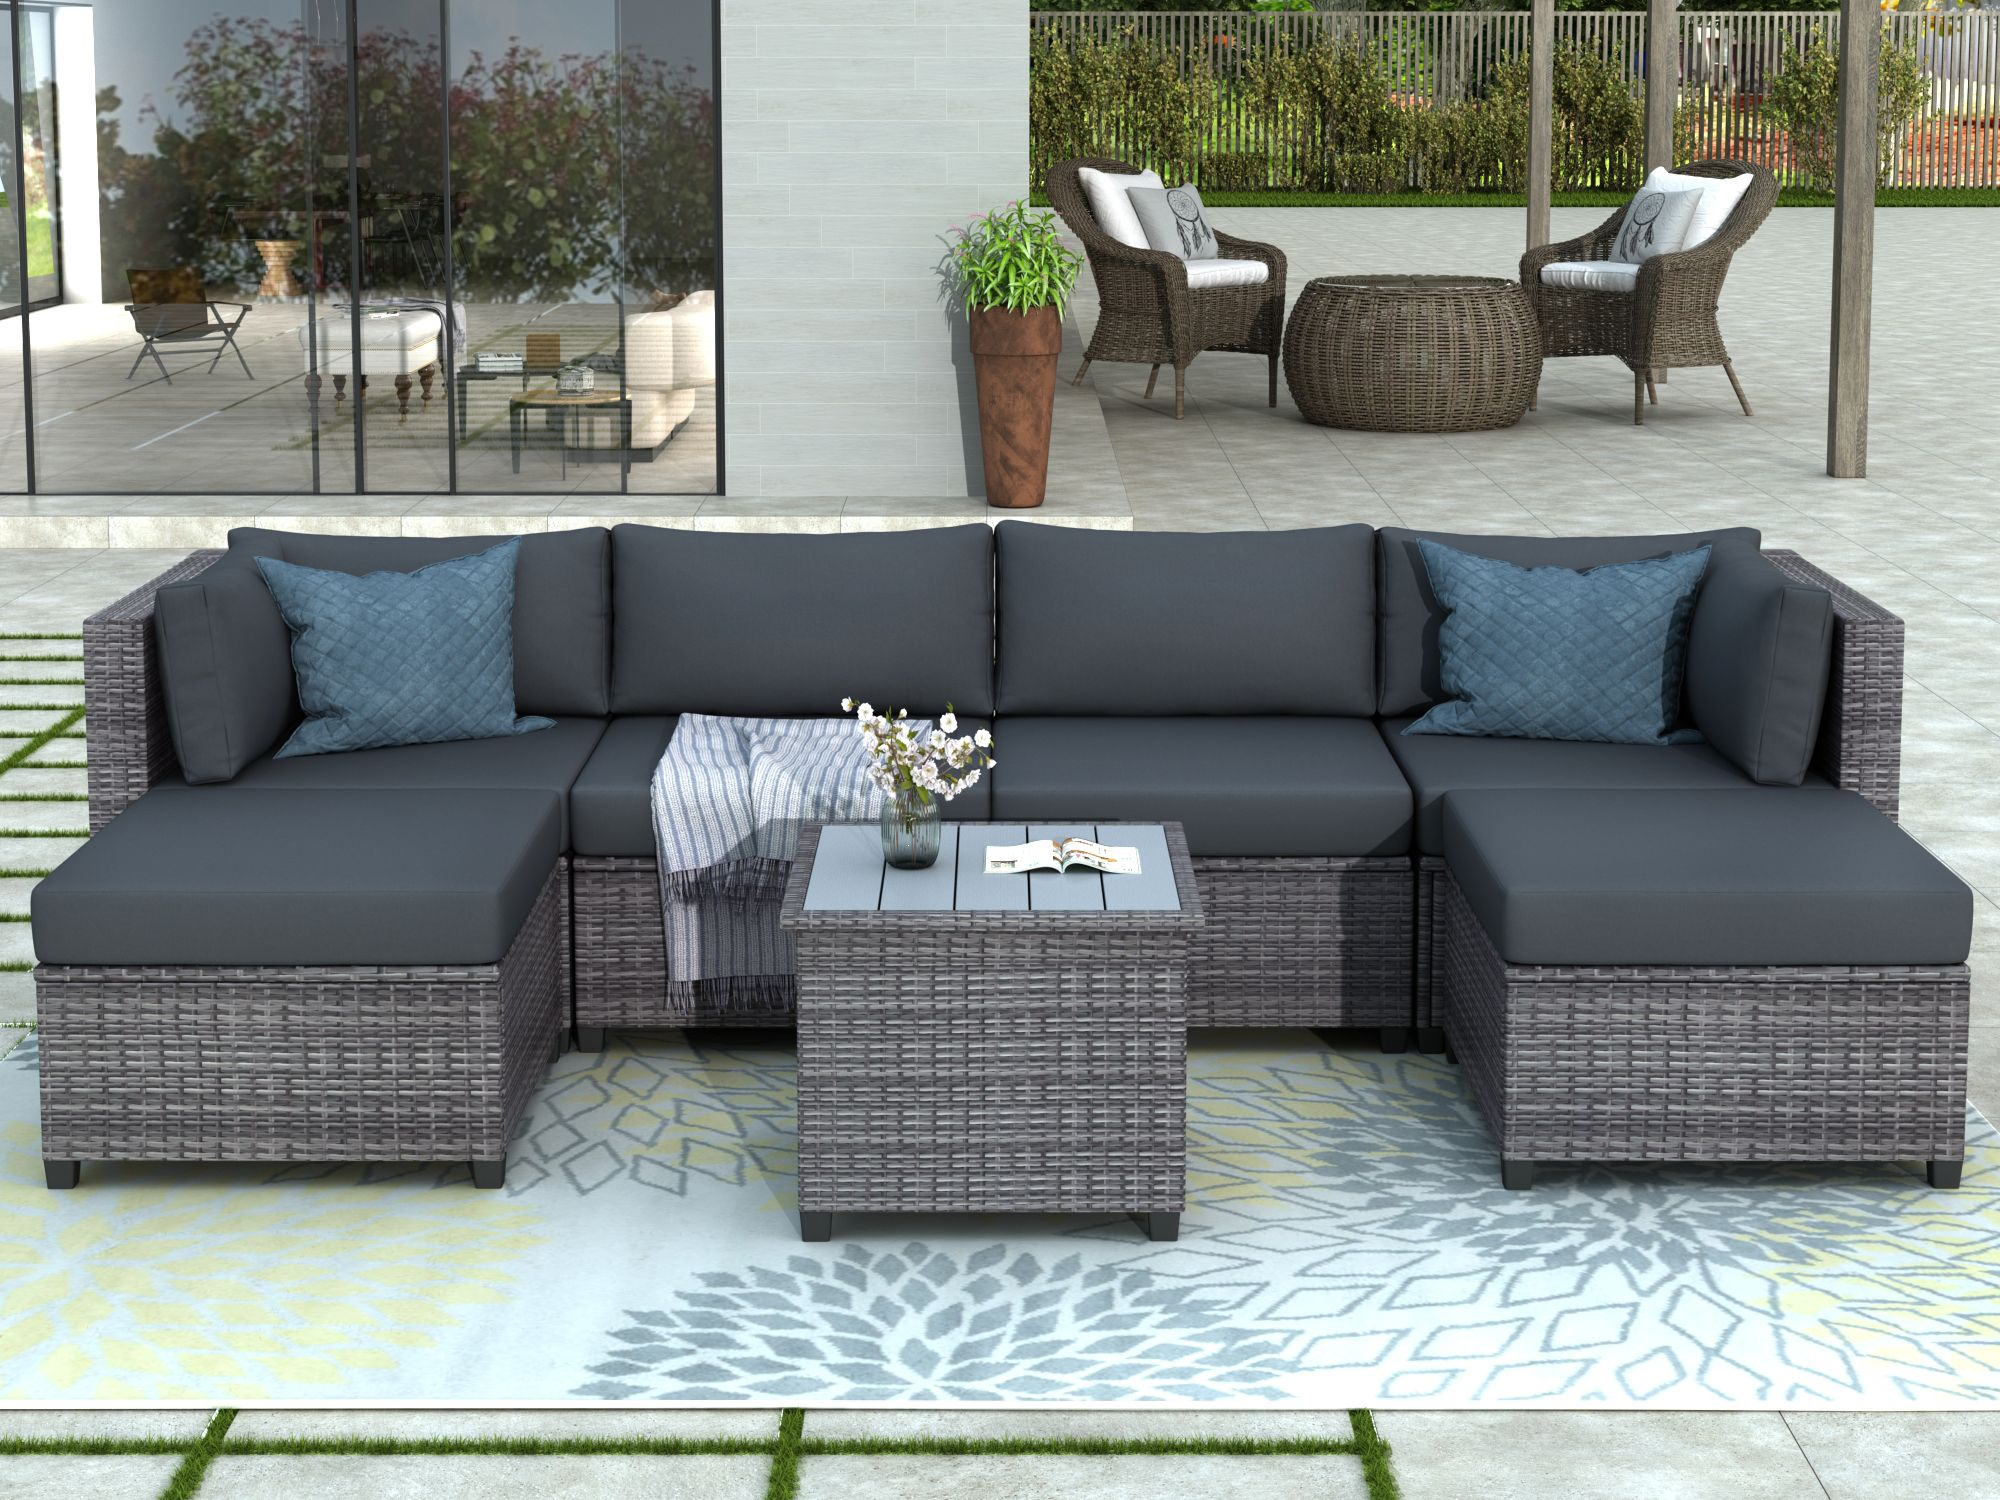 Clearance Outdoor Patio Sectional Sofa Sets Segmart Newest 7 Pieces Wicker Furniture Set With Seat Cushions Polywood Table Conversation Sets With 2 Ottoman In 2020 Backyard Furniture Small Patio Furniture Teak Patio Furniture - Grey Garden Furniture Clearance